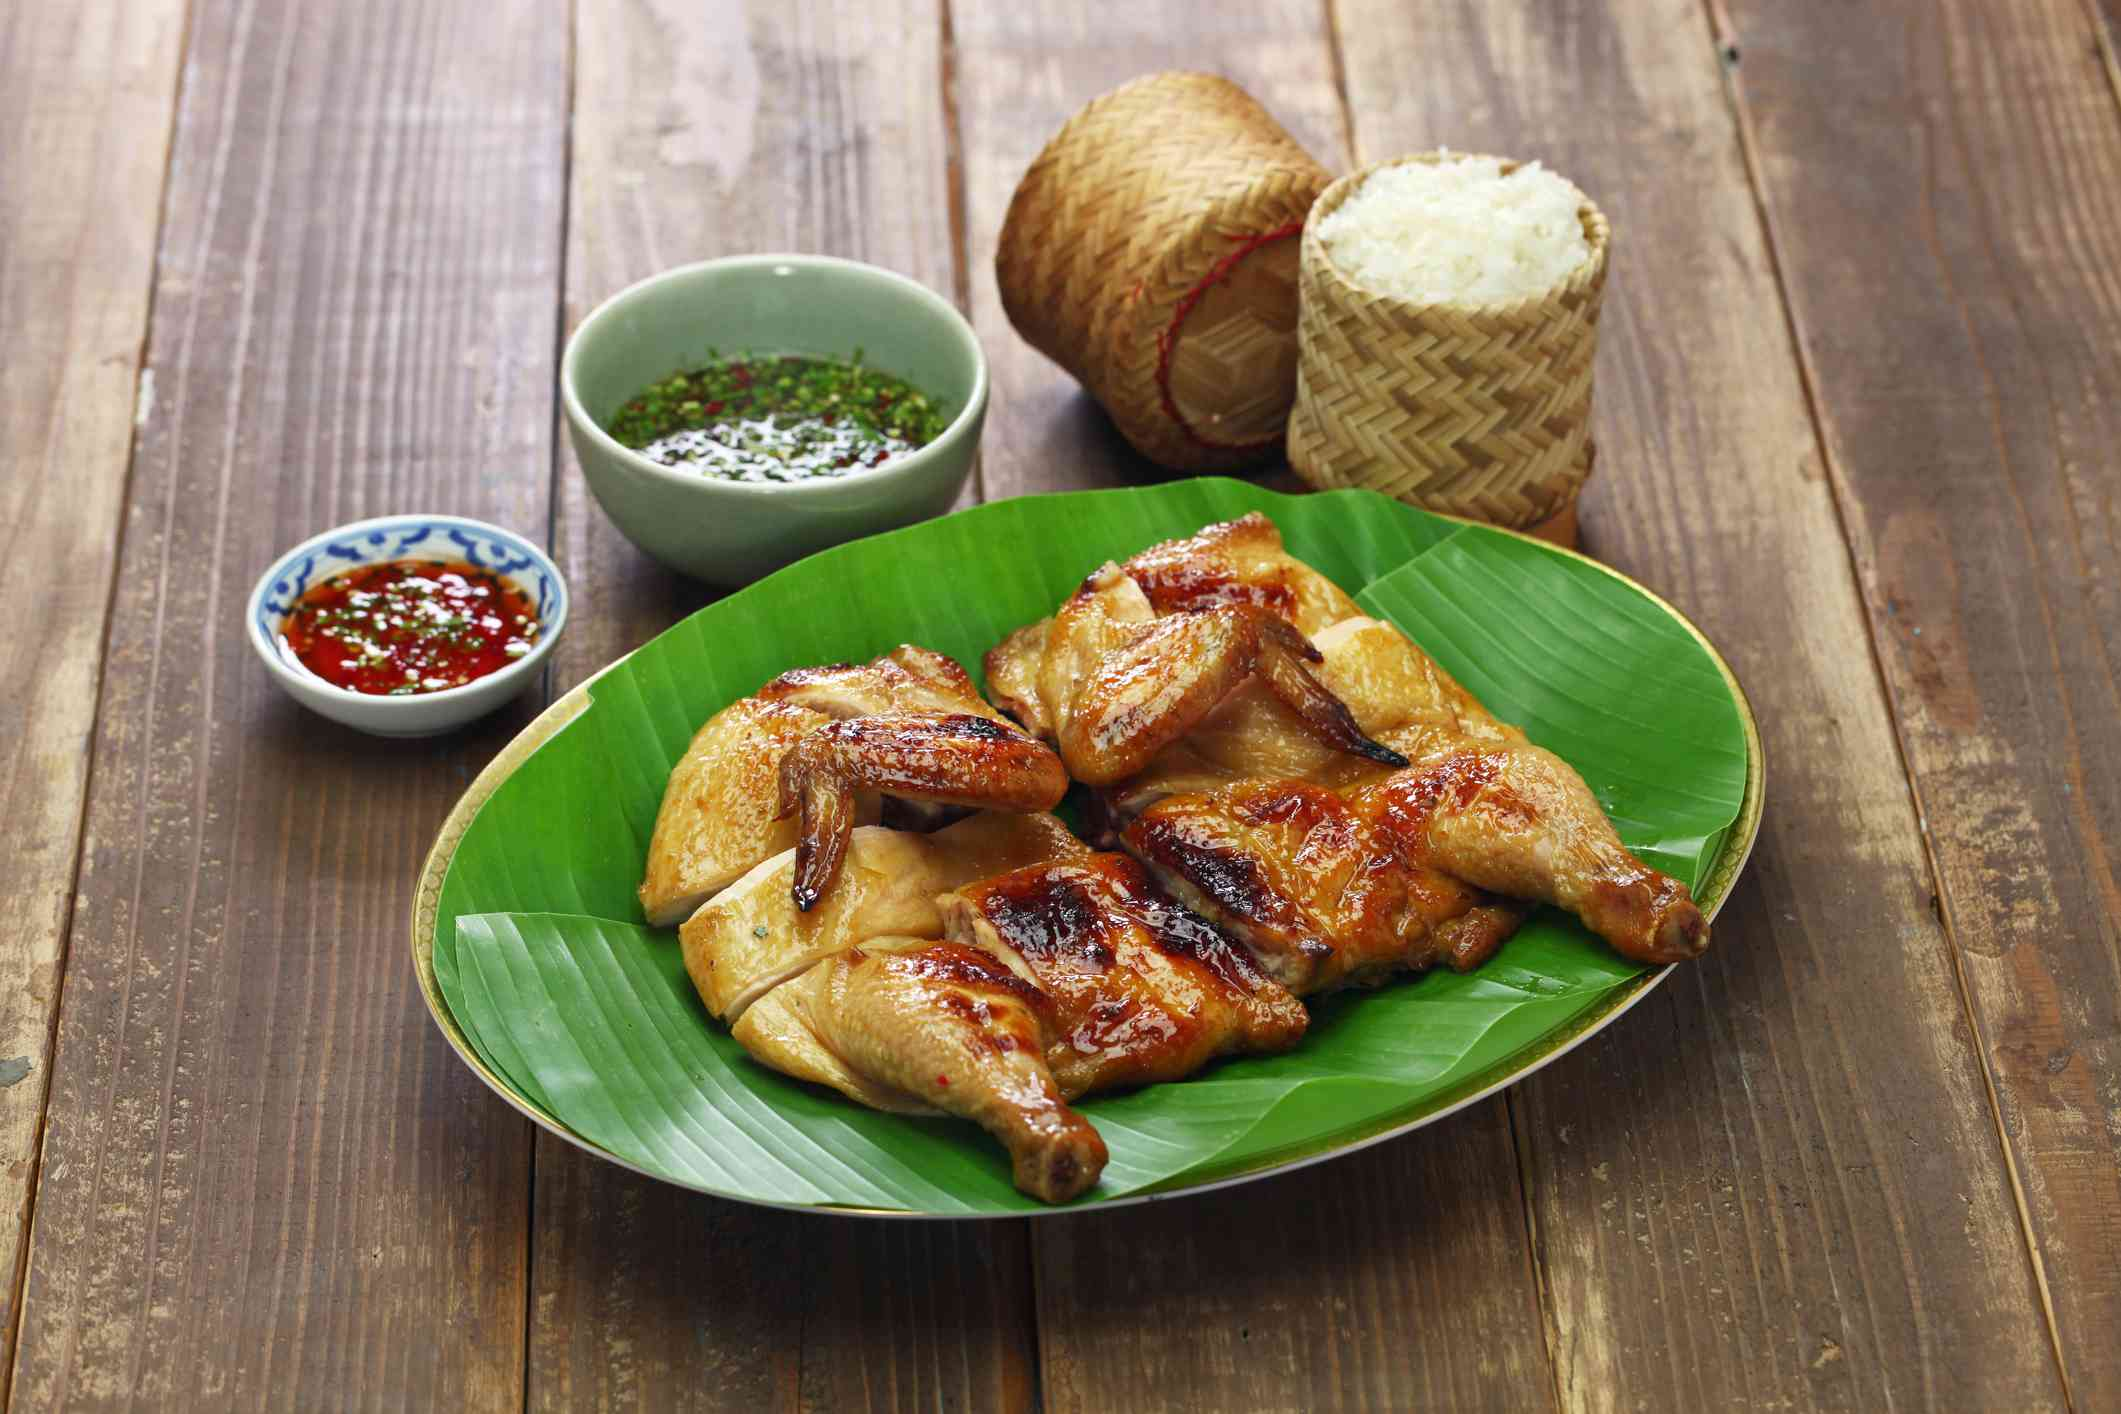 cooked and cut whole chicken on a plate with banana leaves. there is also a wicker container with rice and two sauce bowls on the table next to the chicken